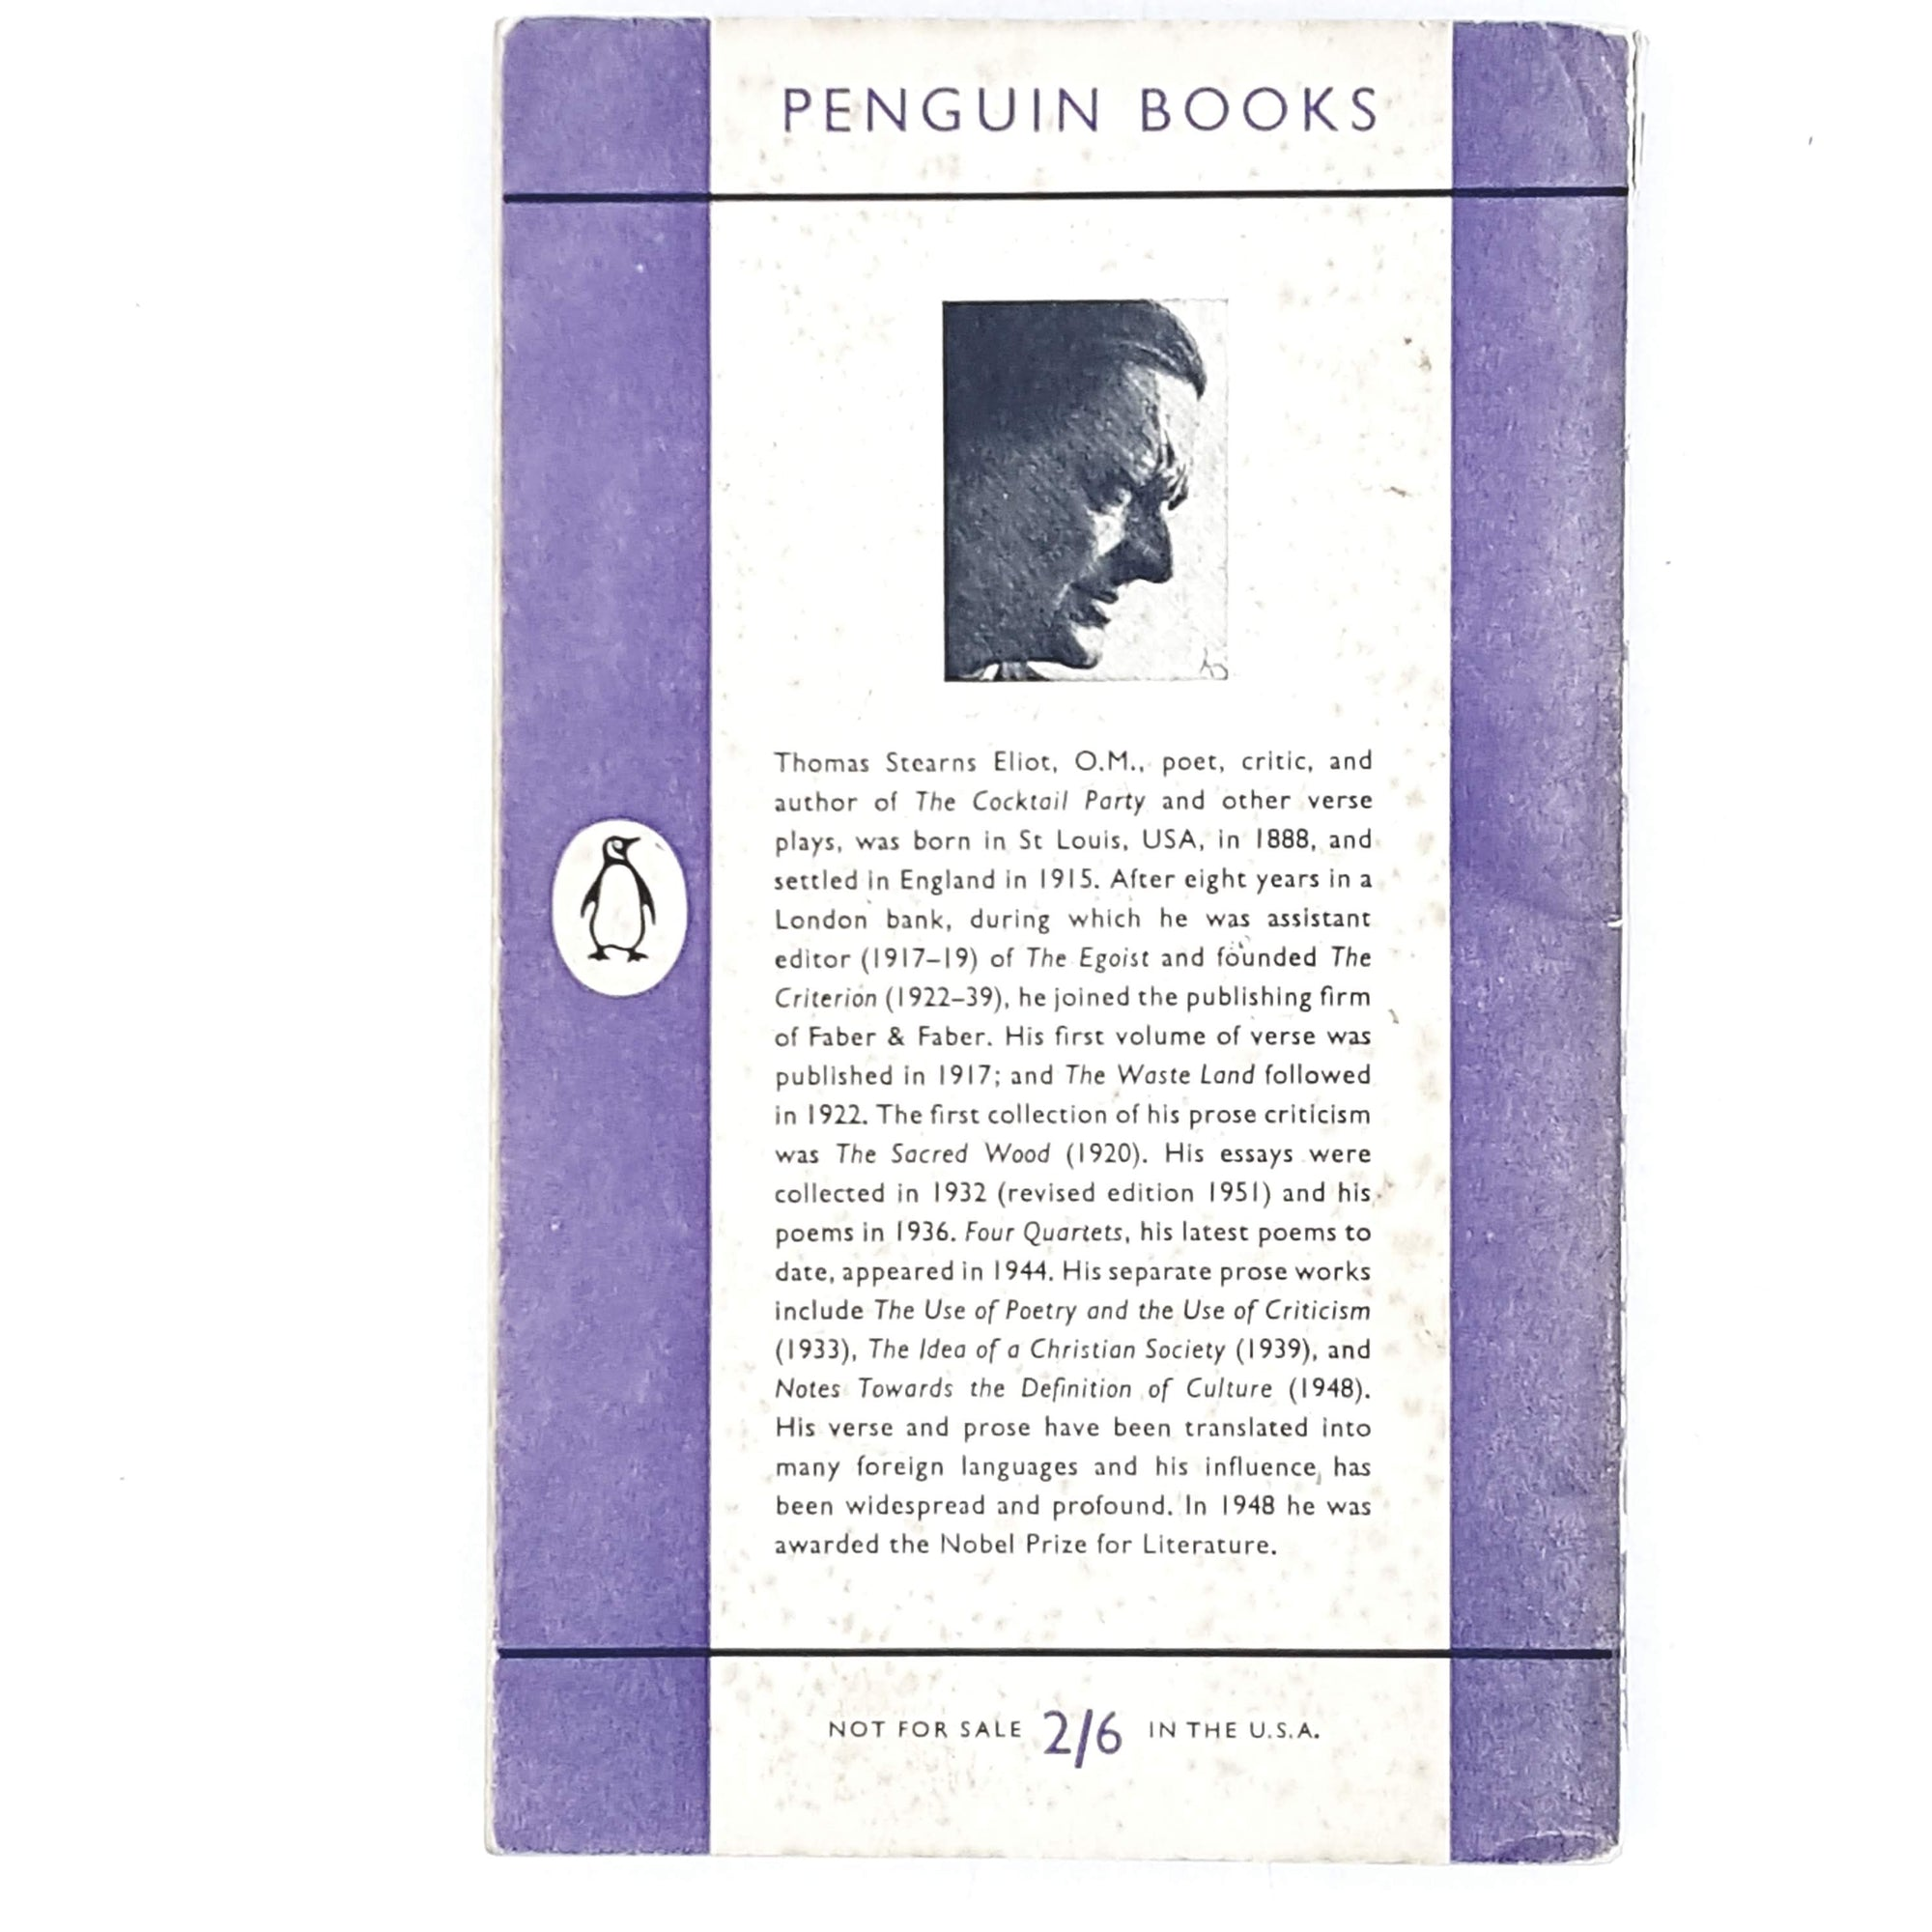 ts-eliot-purple-vintage-penguin-country-house-library